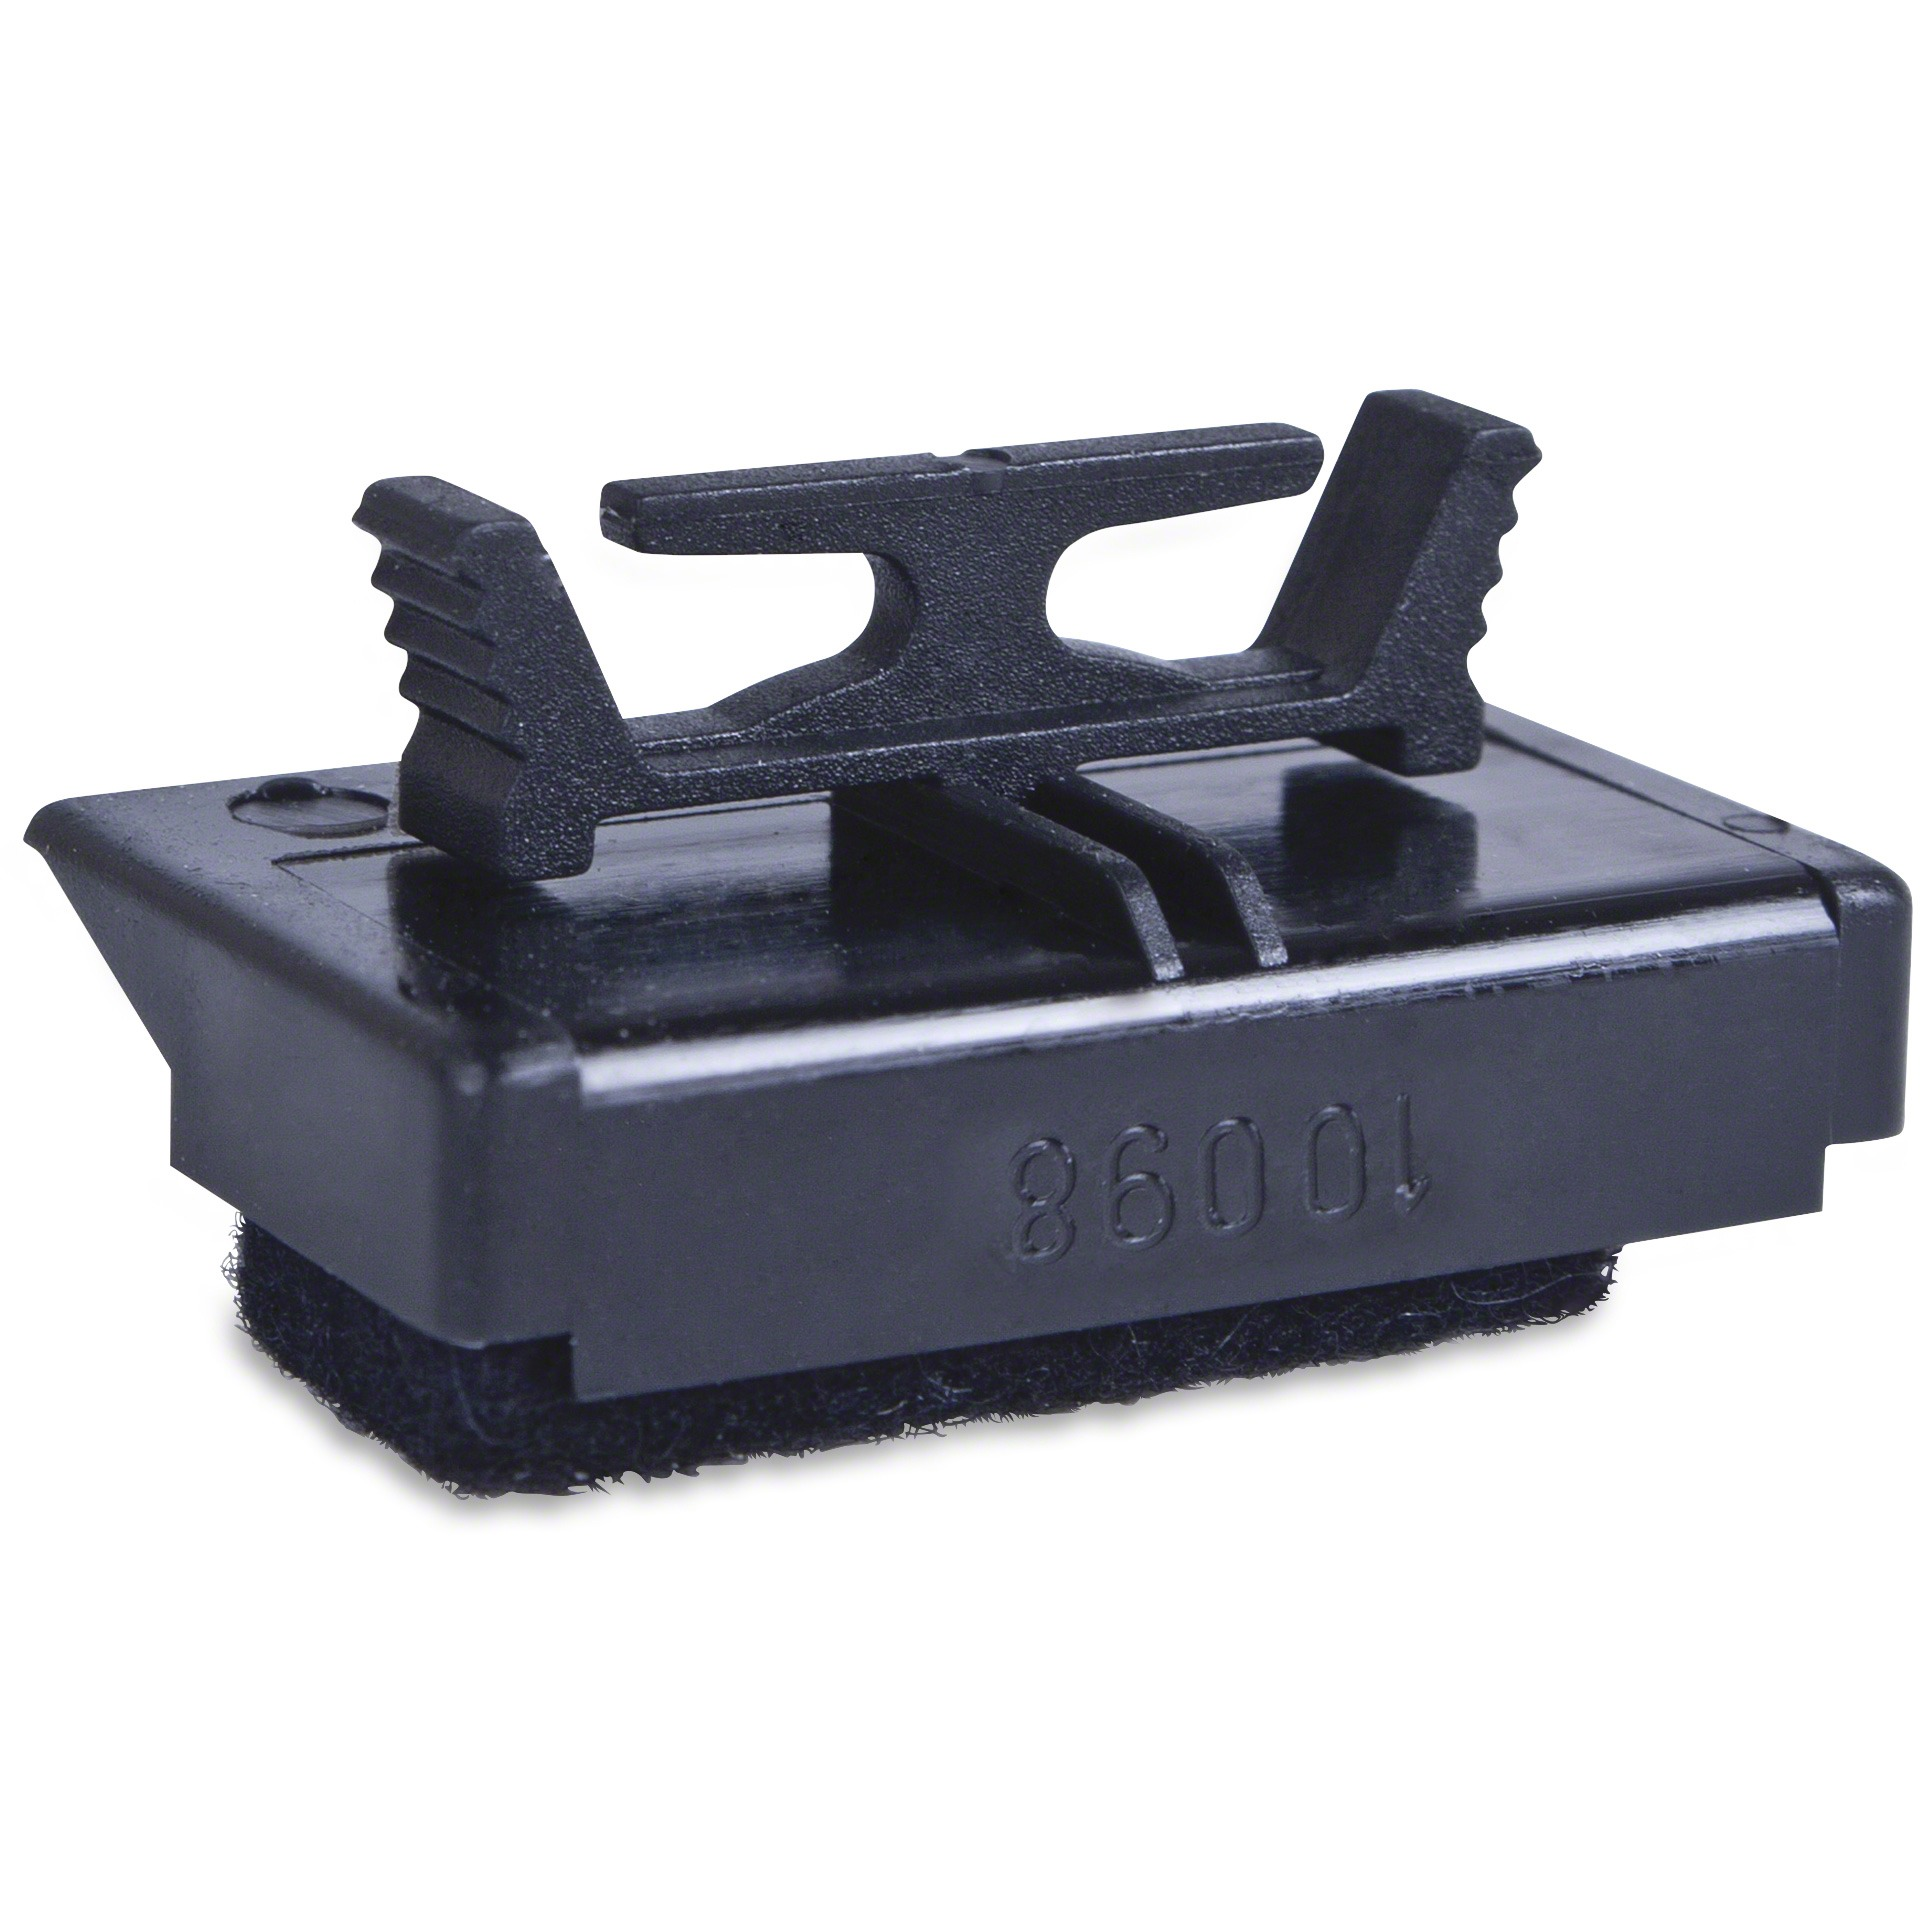 COSCO Replacement Ink Pad for Reiner 026304 Multiple Movement Numbering Machine, Black